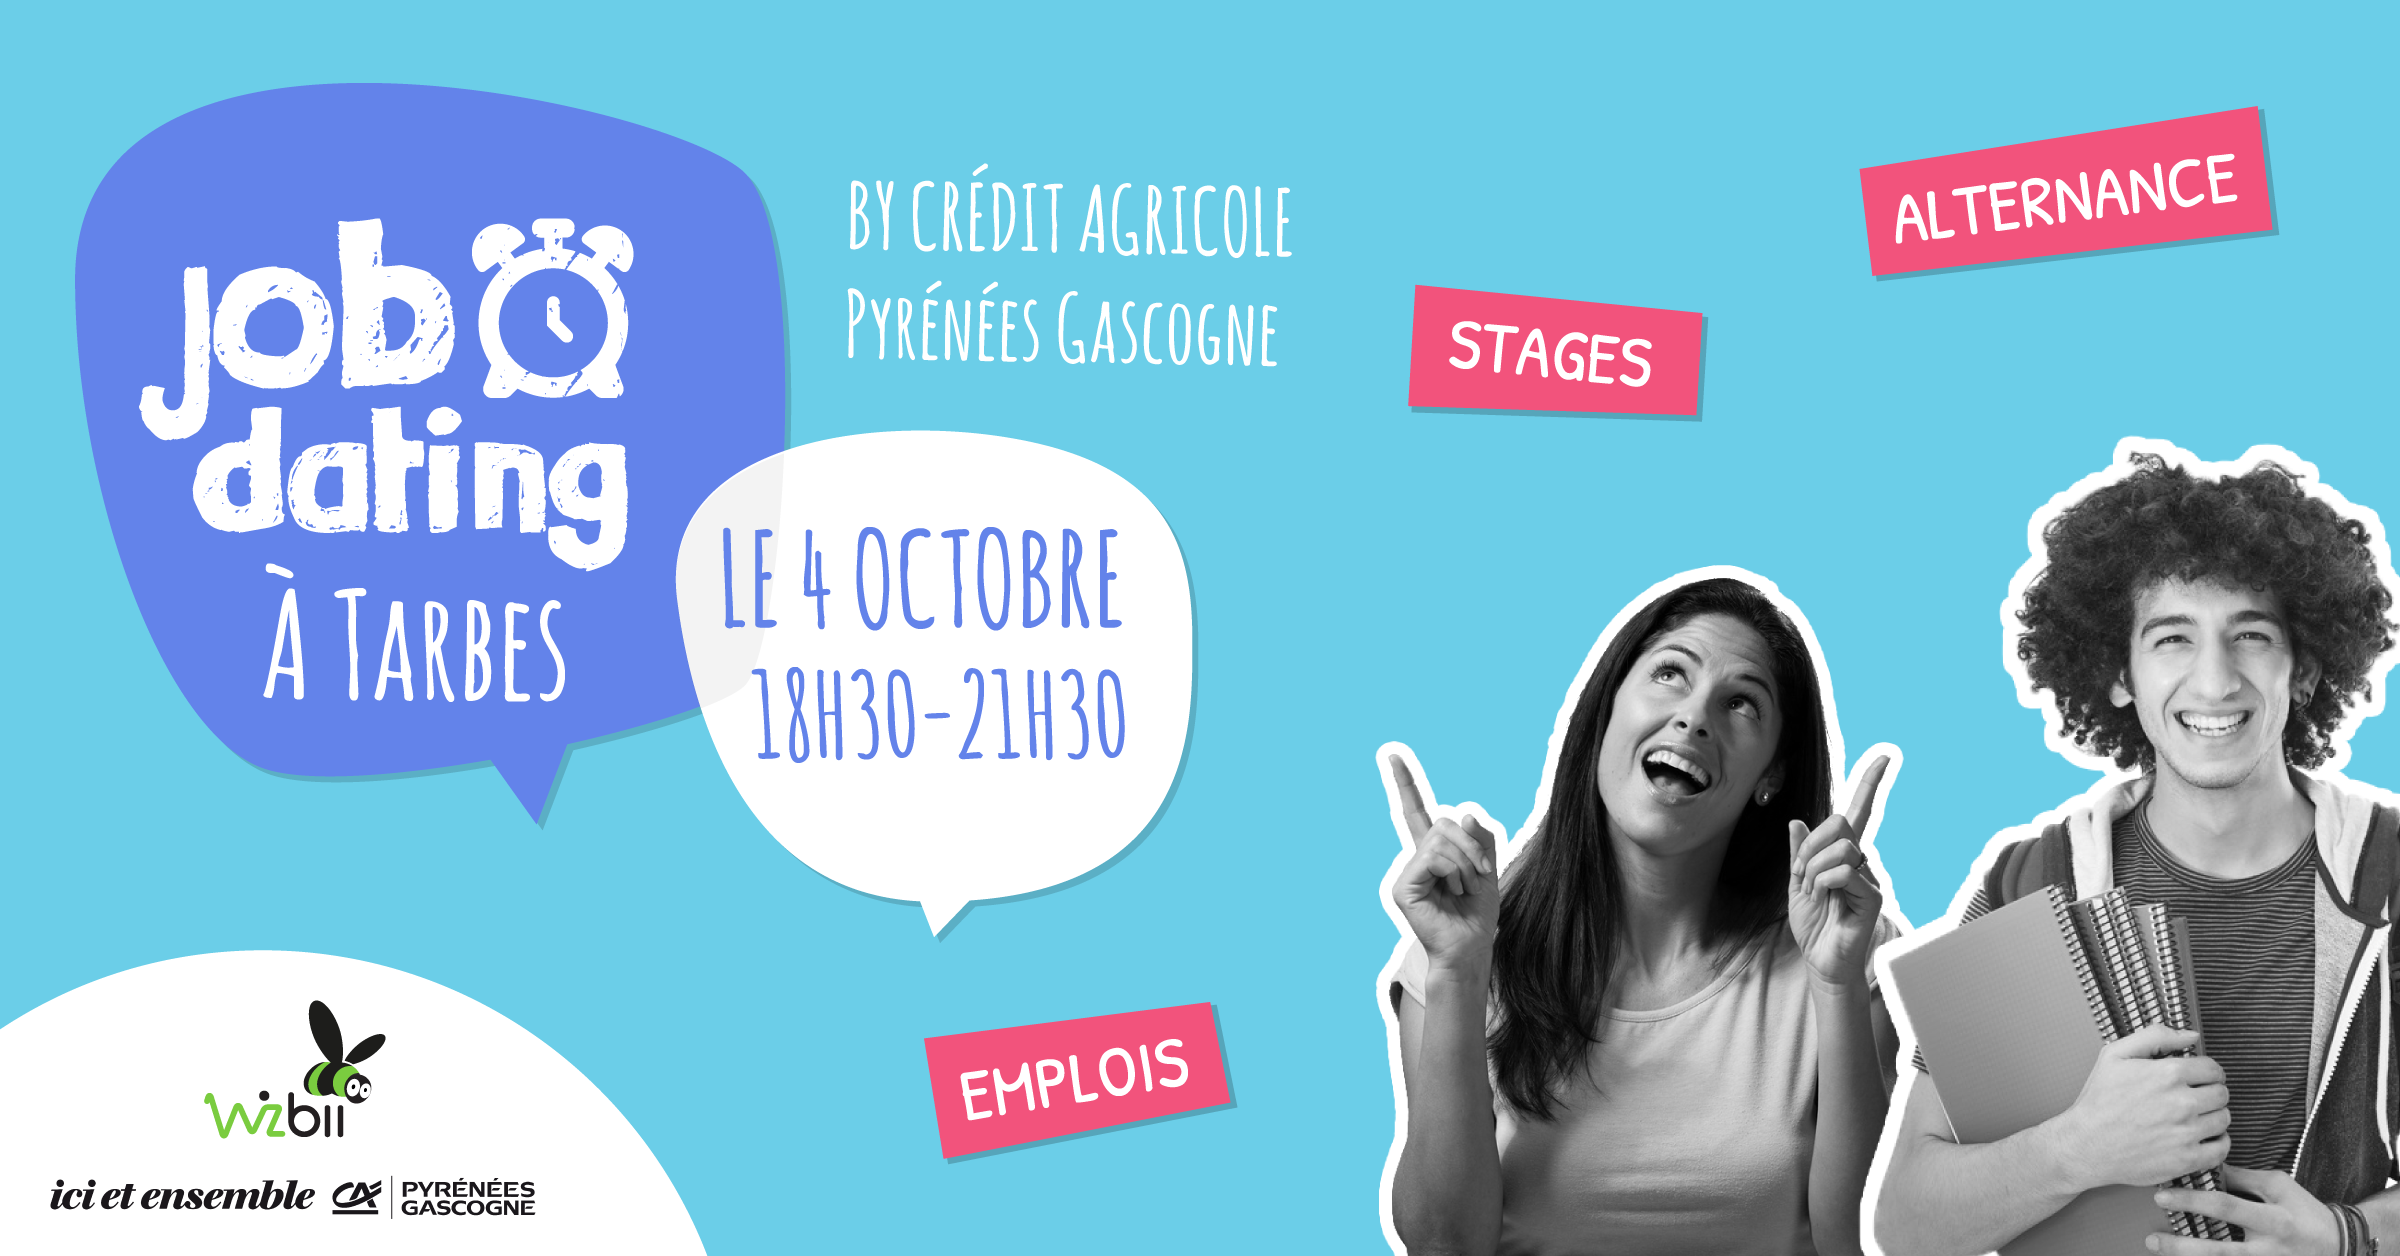 https://www.wizbii.com/company/capg/?utm_source=la-ruche&utm_medium=other&utm_campaign=tarbes-capg-04-octobre-2017#job-dating